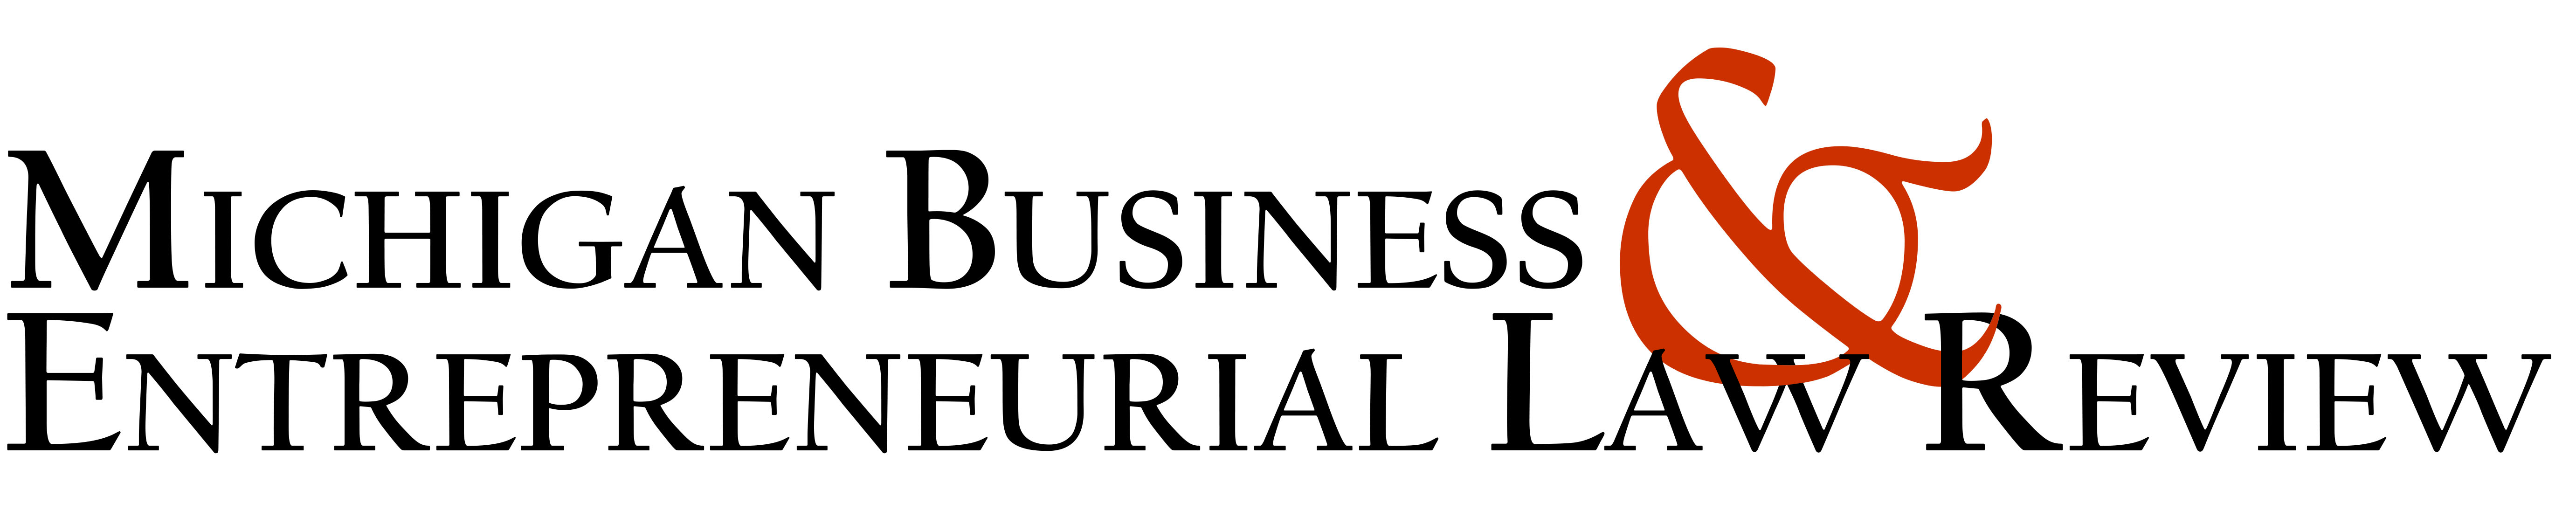 Michigan Business & Entrepreneurial Law Review